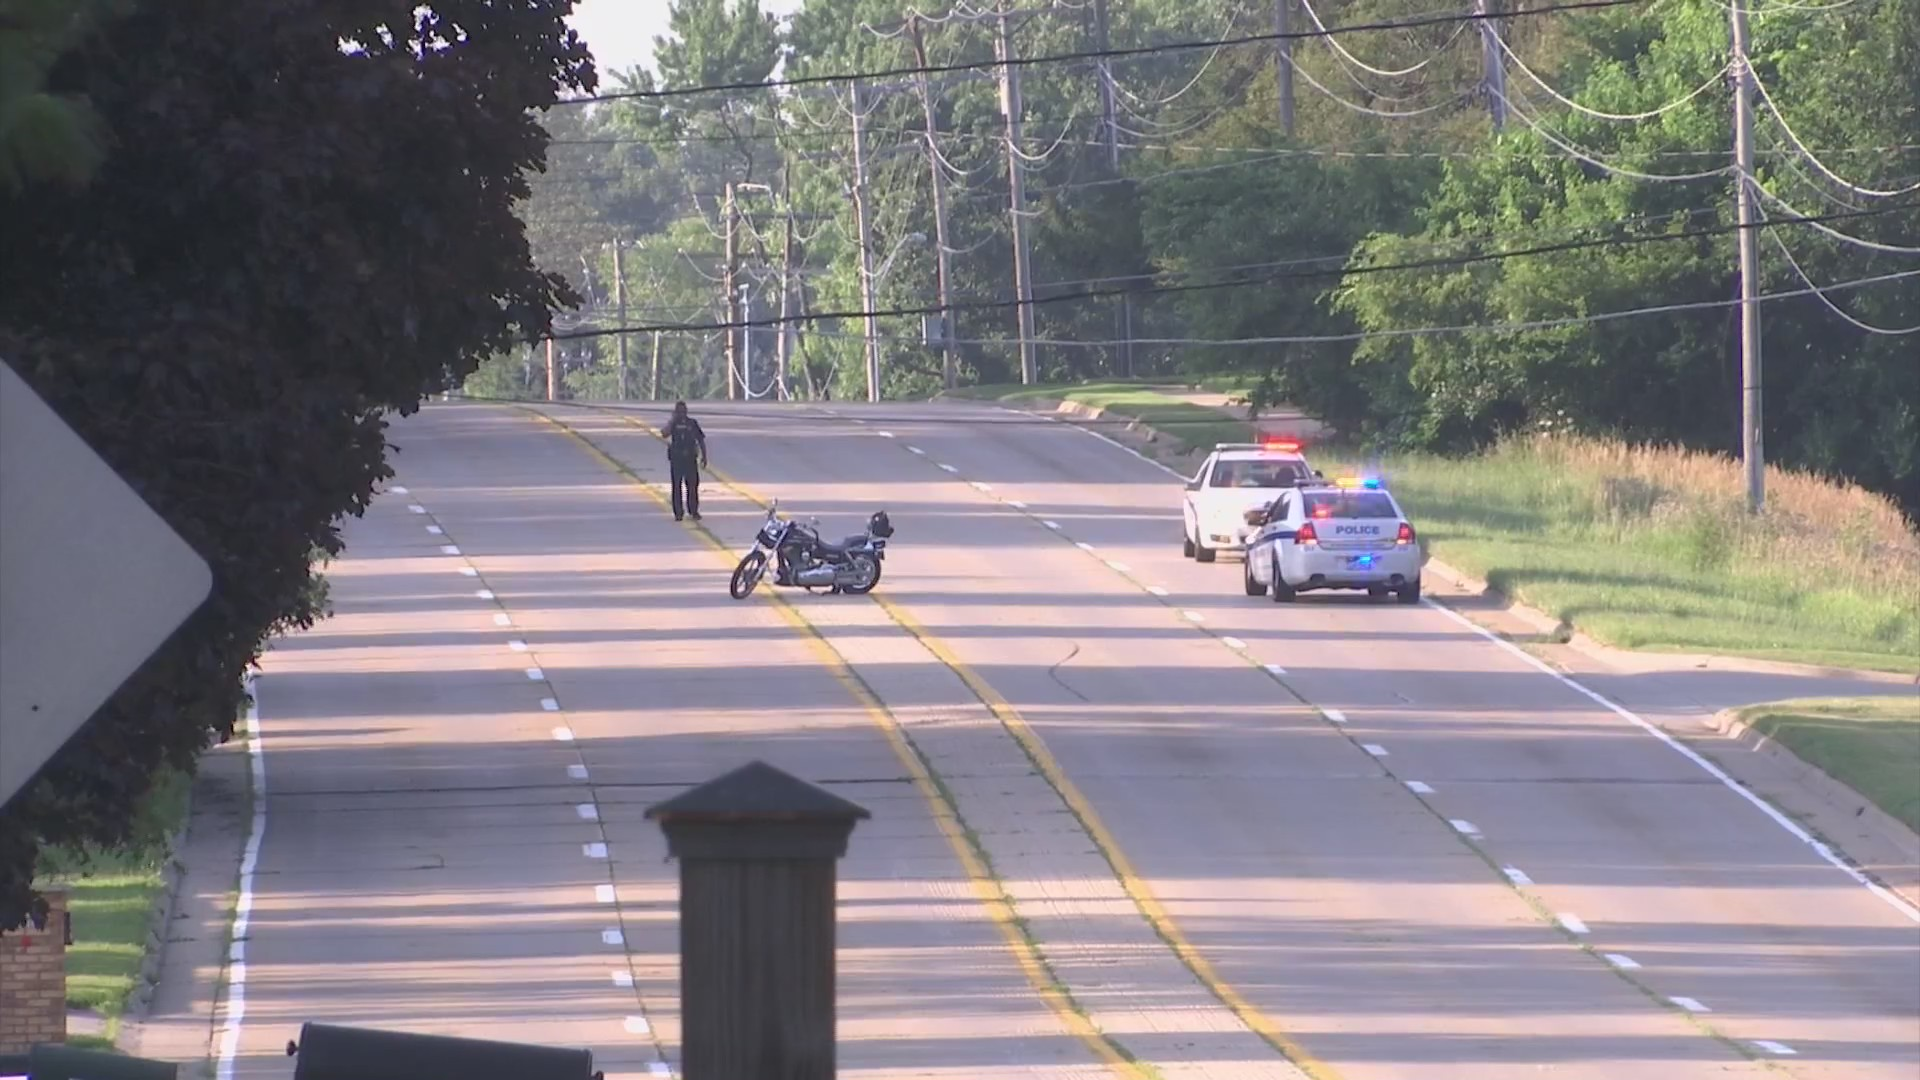 Motorcycle crash sends man to hospital with life-threatening